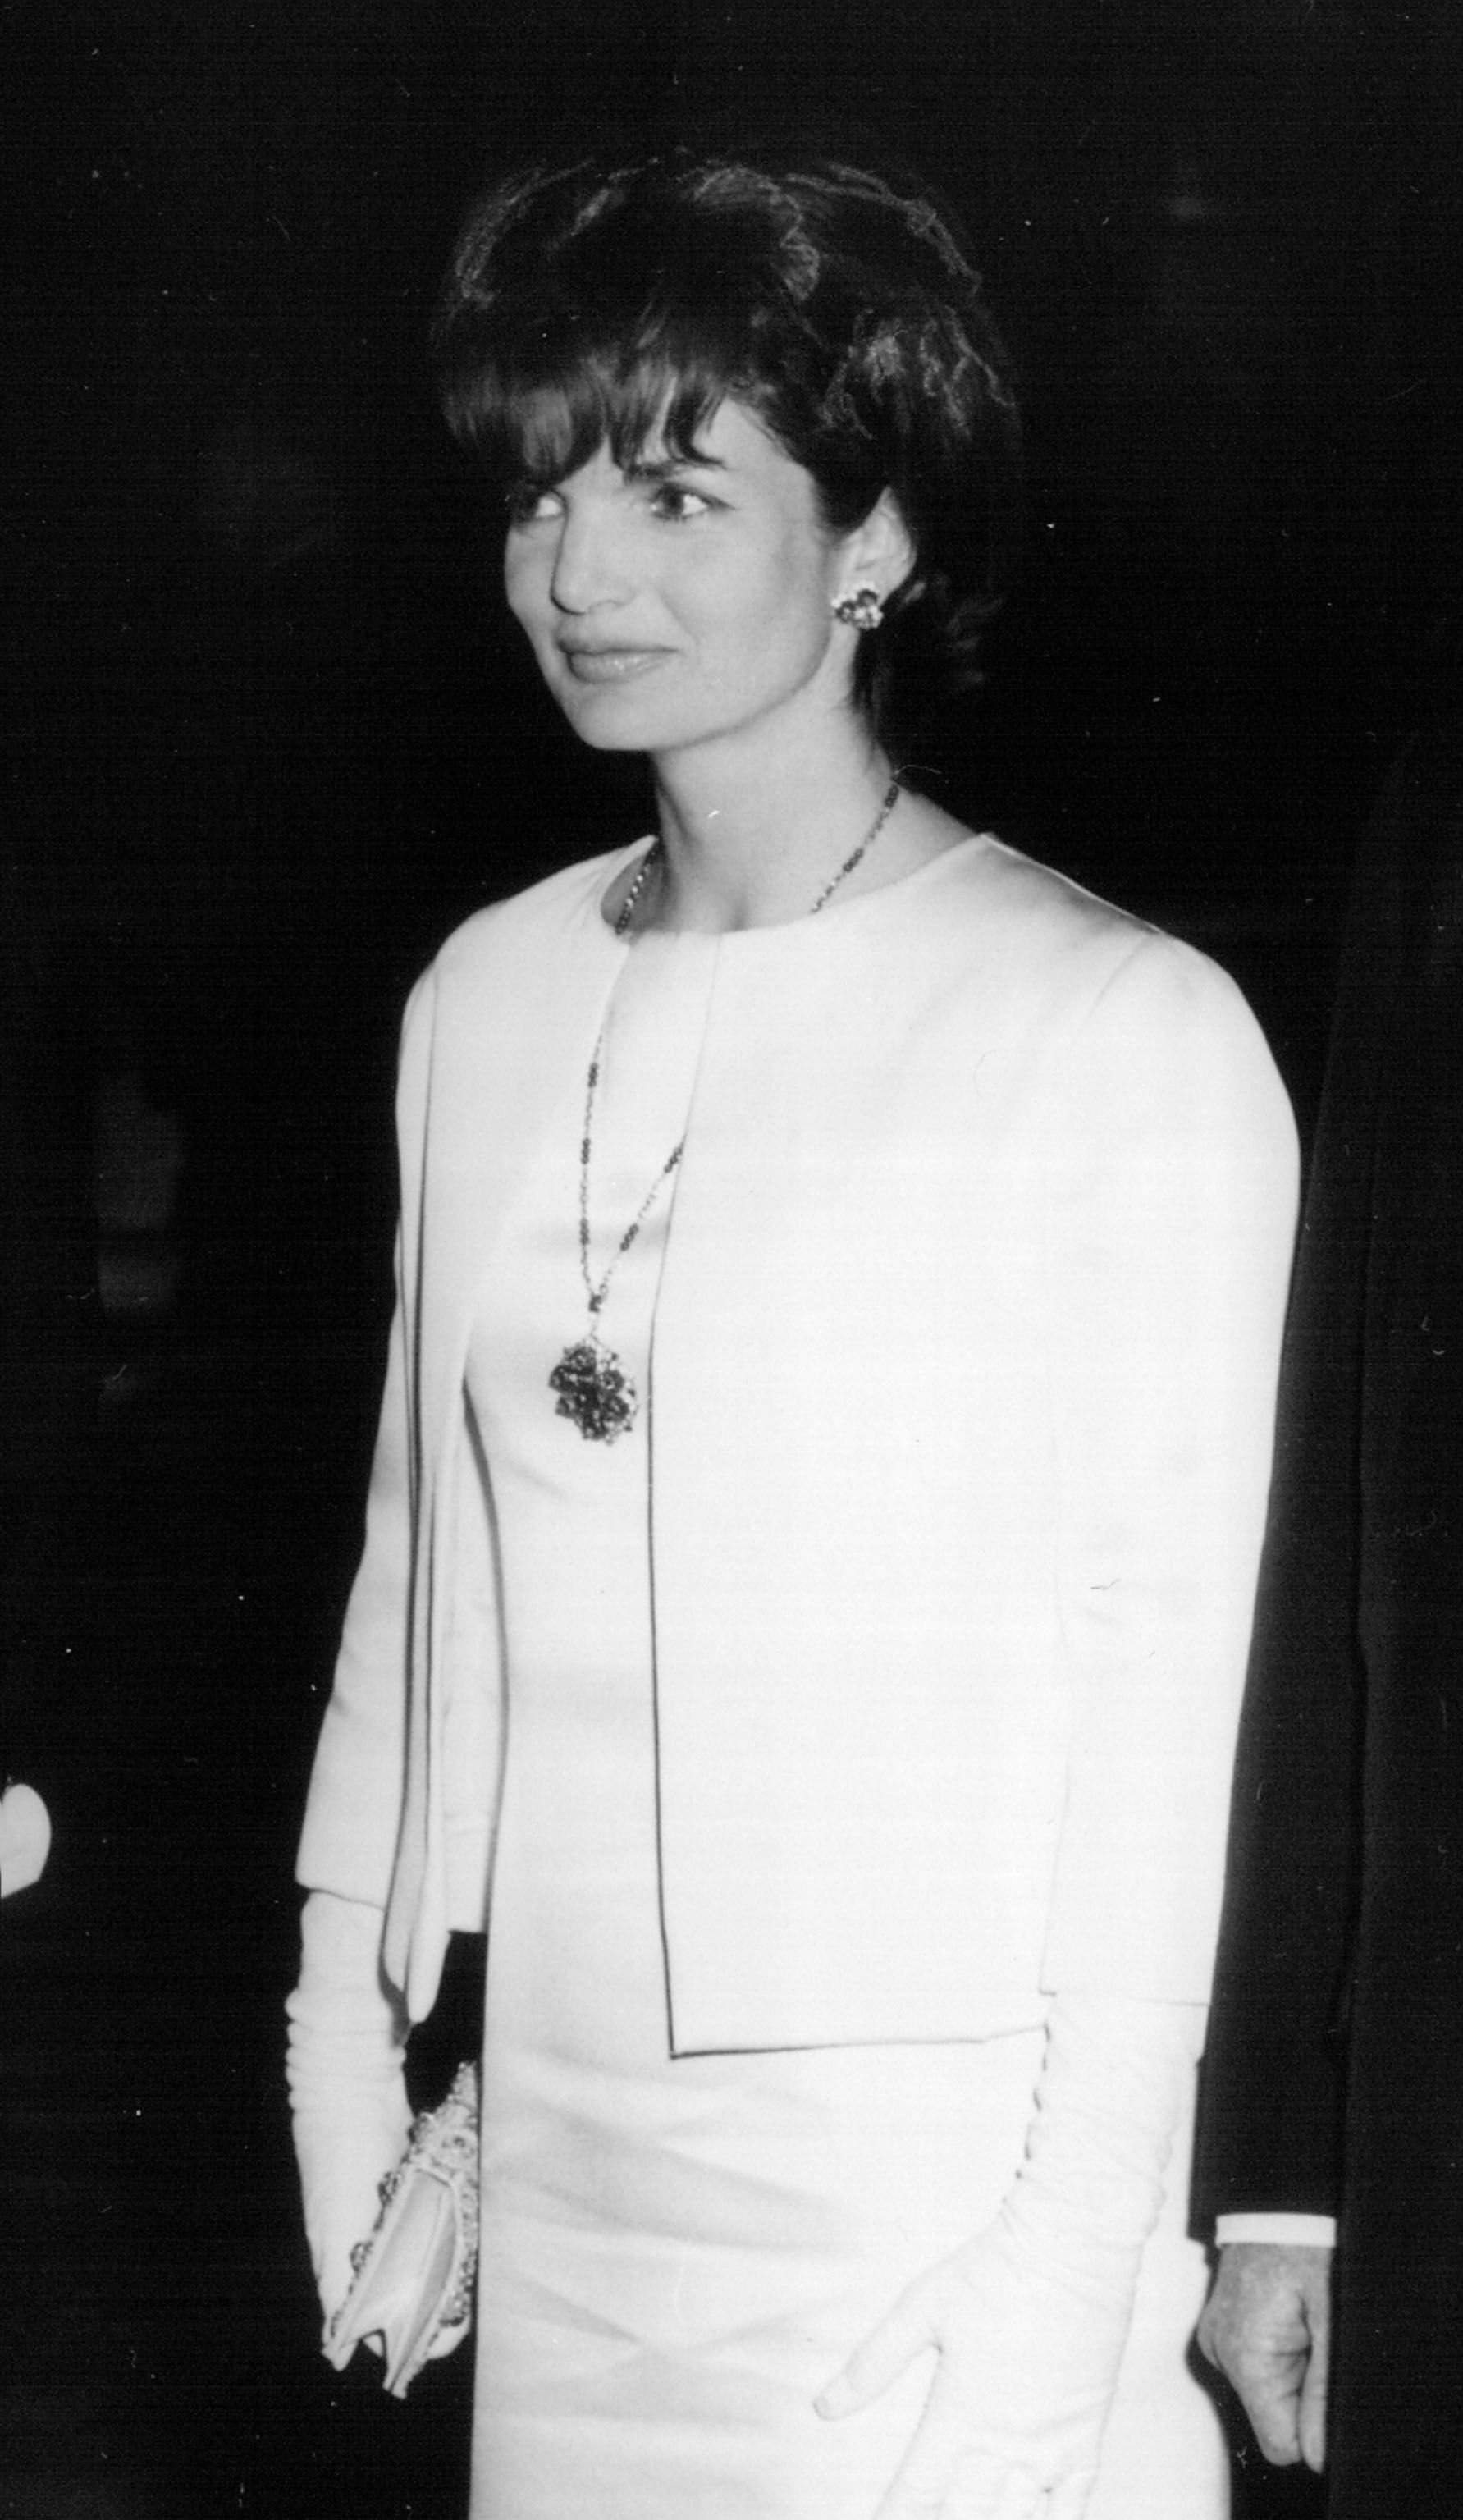 Lady Jackie Kennedy attends a White House Ceremony December 6, 1962 in Washington, DC. | Source: Getty Images